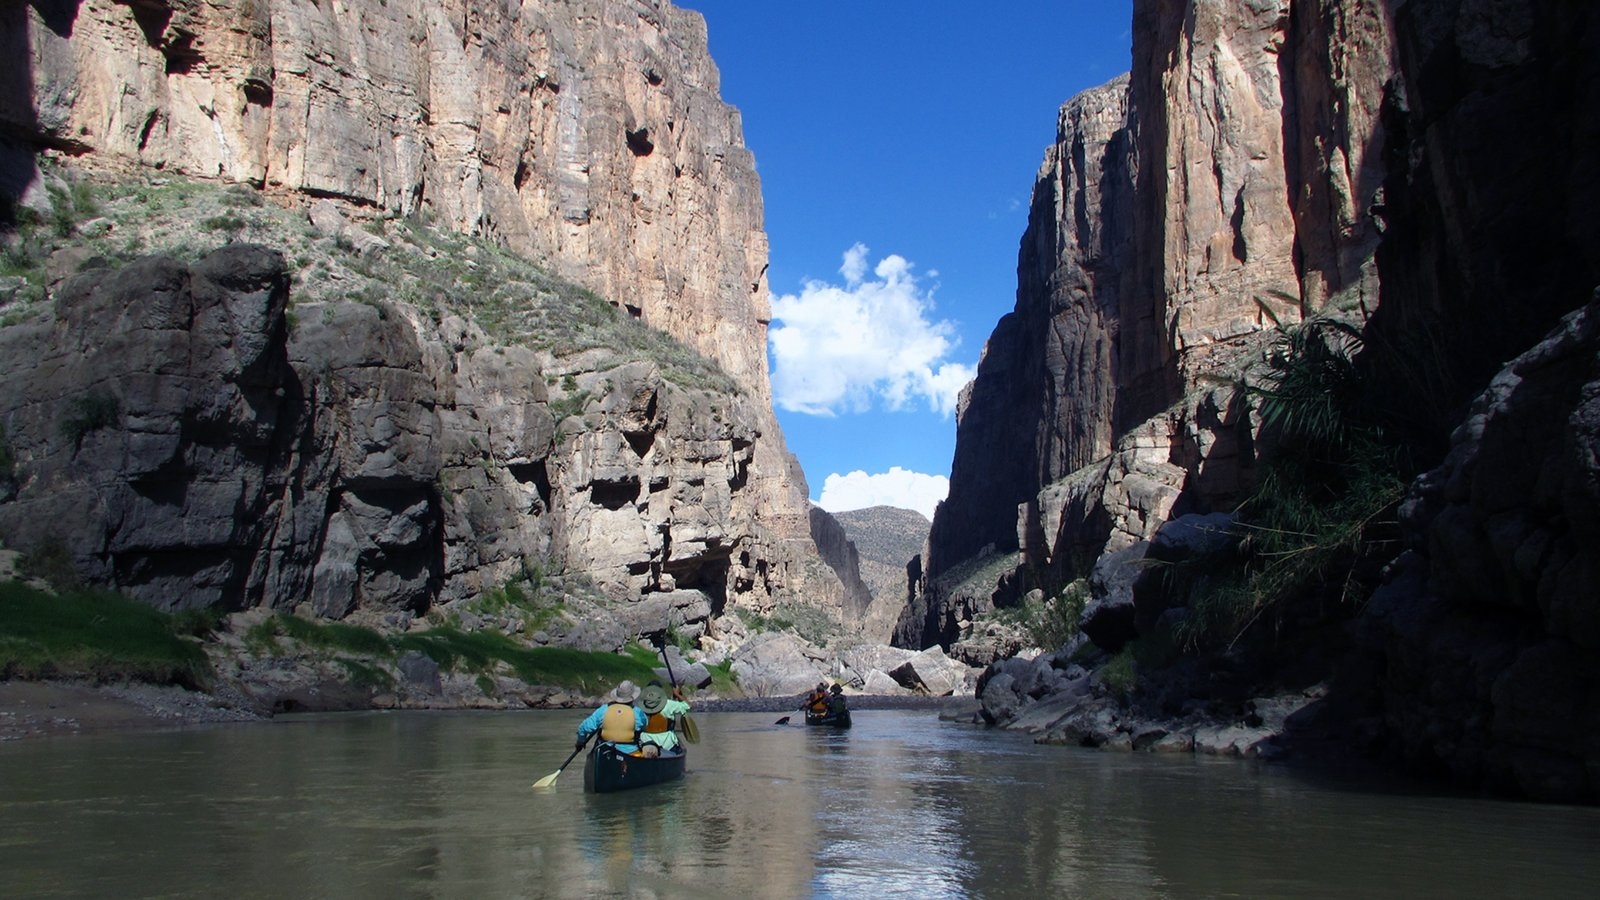 big bend national park divorced singles You don't need a friend to travel join our small group, women-only tours where every woman is traveling solo travel club atmosphere vacations and tours in the usa and international 70+ trips to choose from.